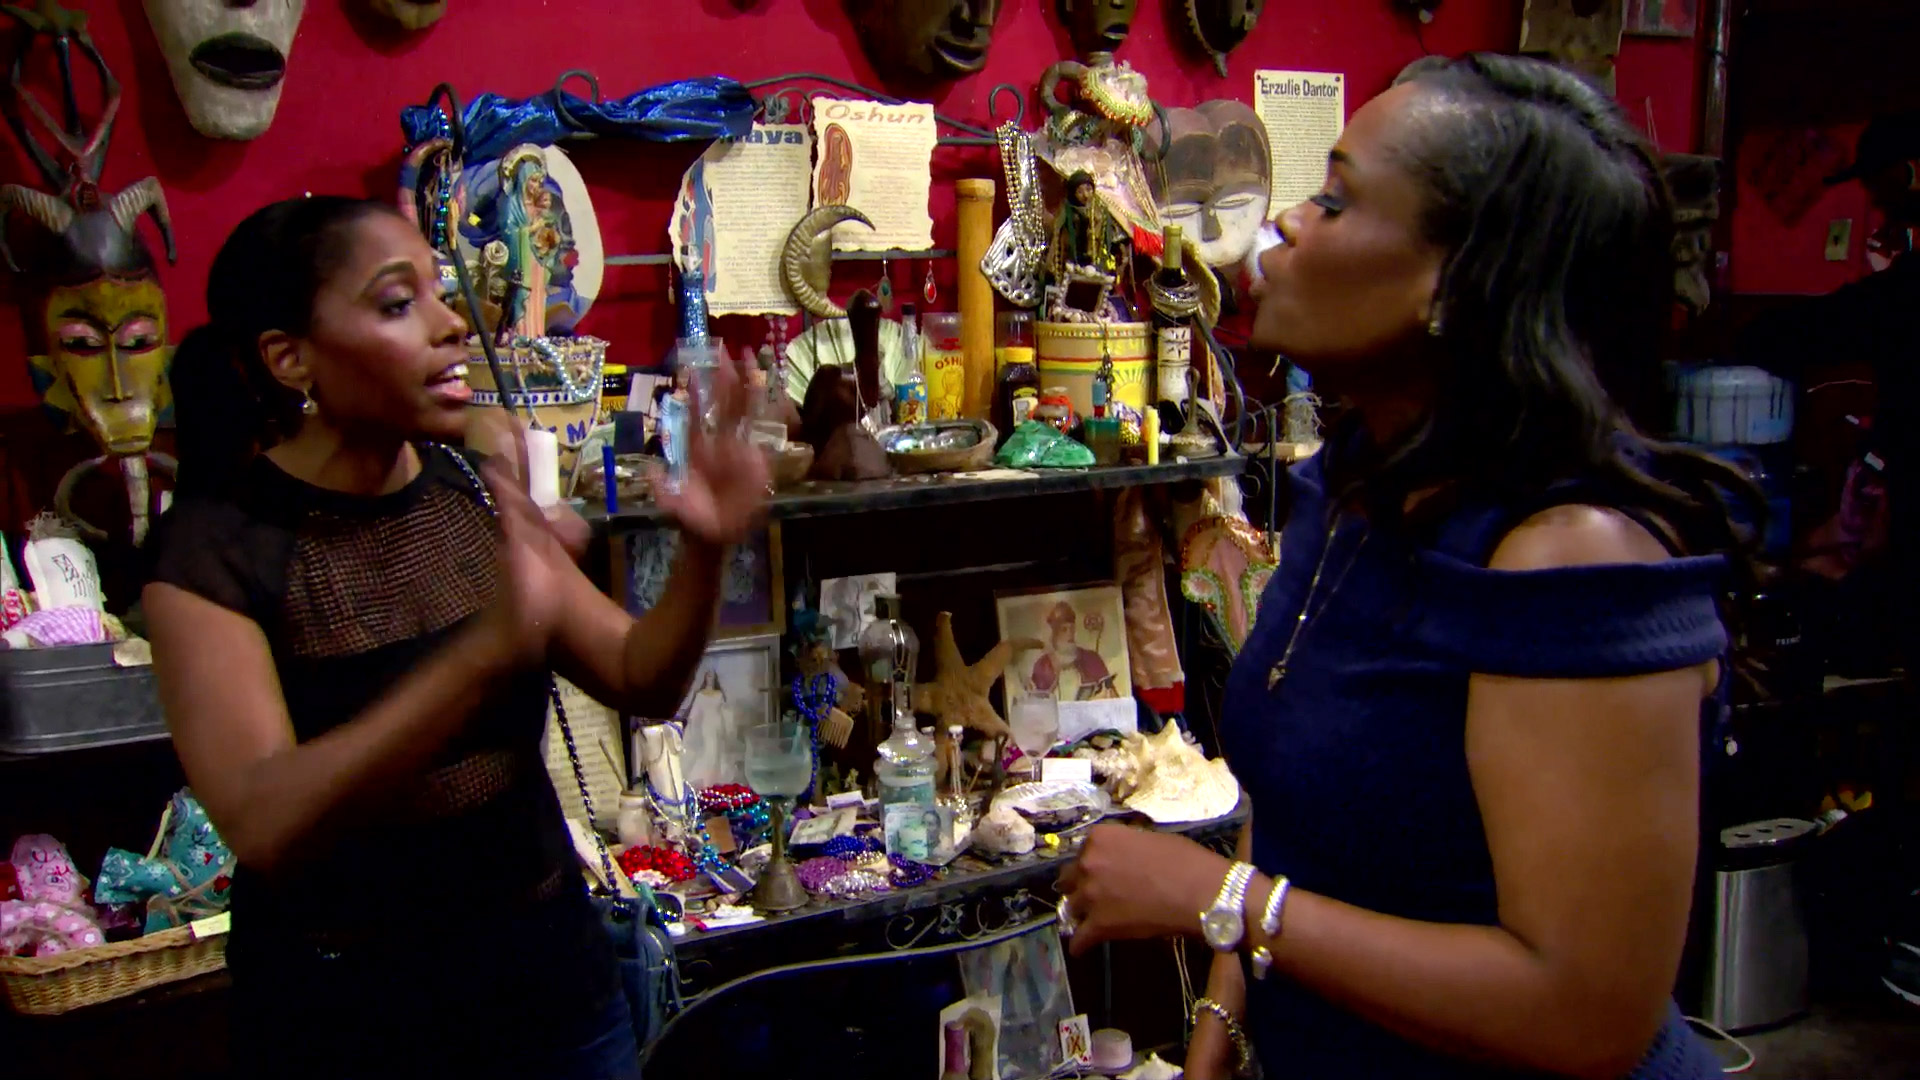 Dr. Heavenly Breaks Down in a Voodoo Shop